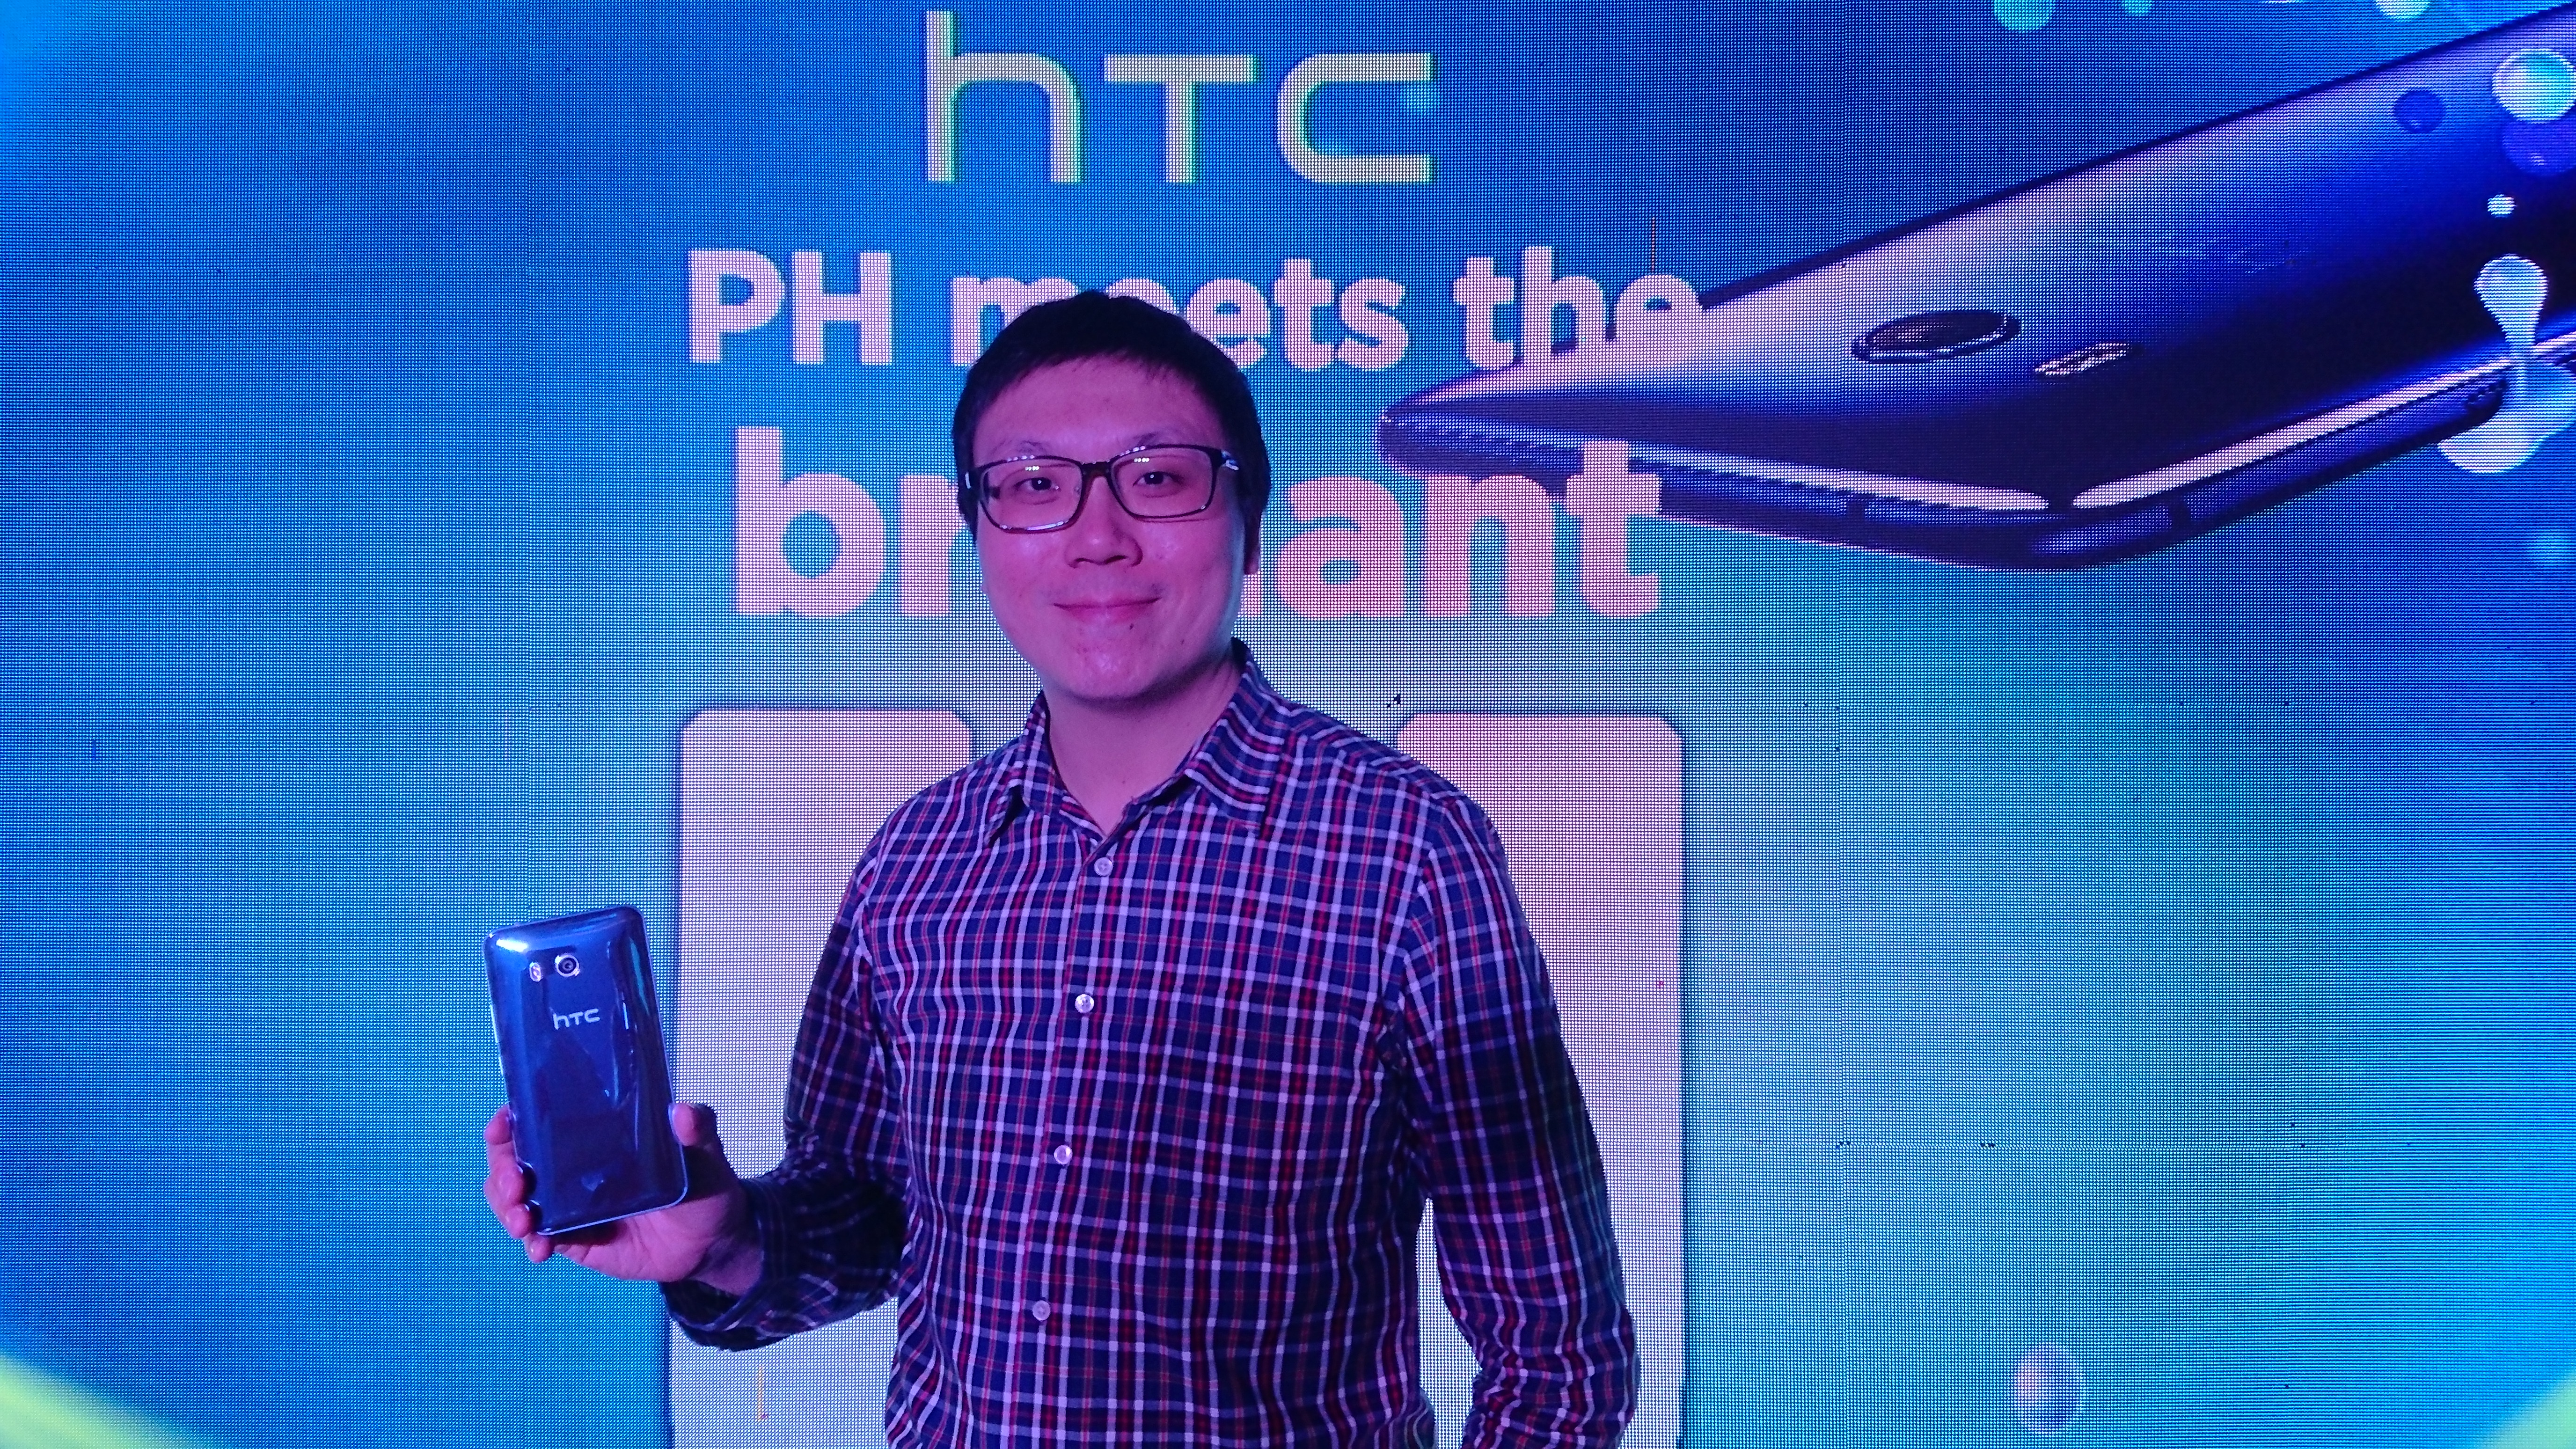 WAYNE TANG. HTC's associate director for global product marketing says the biggest change in the PH market since their departure around 2013 is the influx of Chinese phone makers. Photo by Gelo Gonzales/Rappler